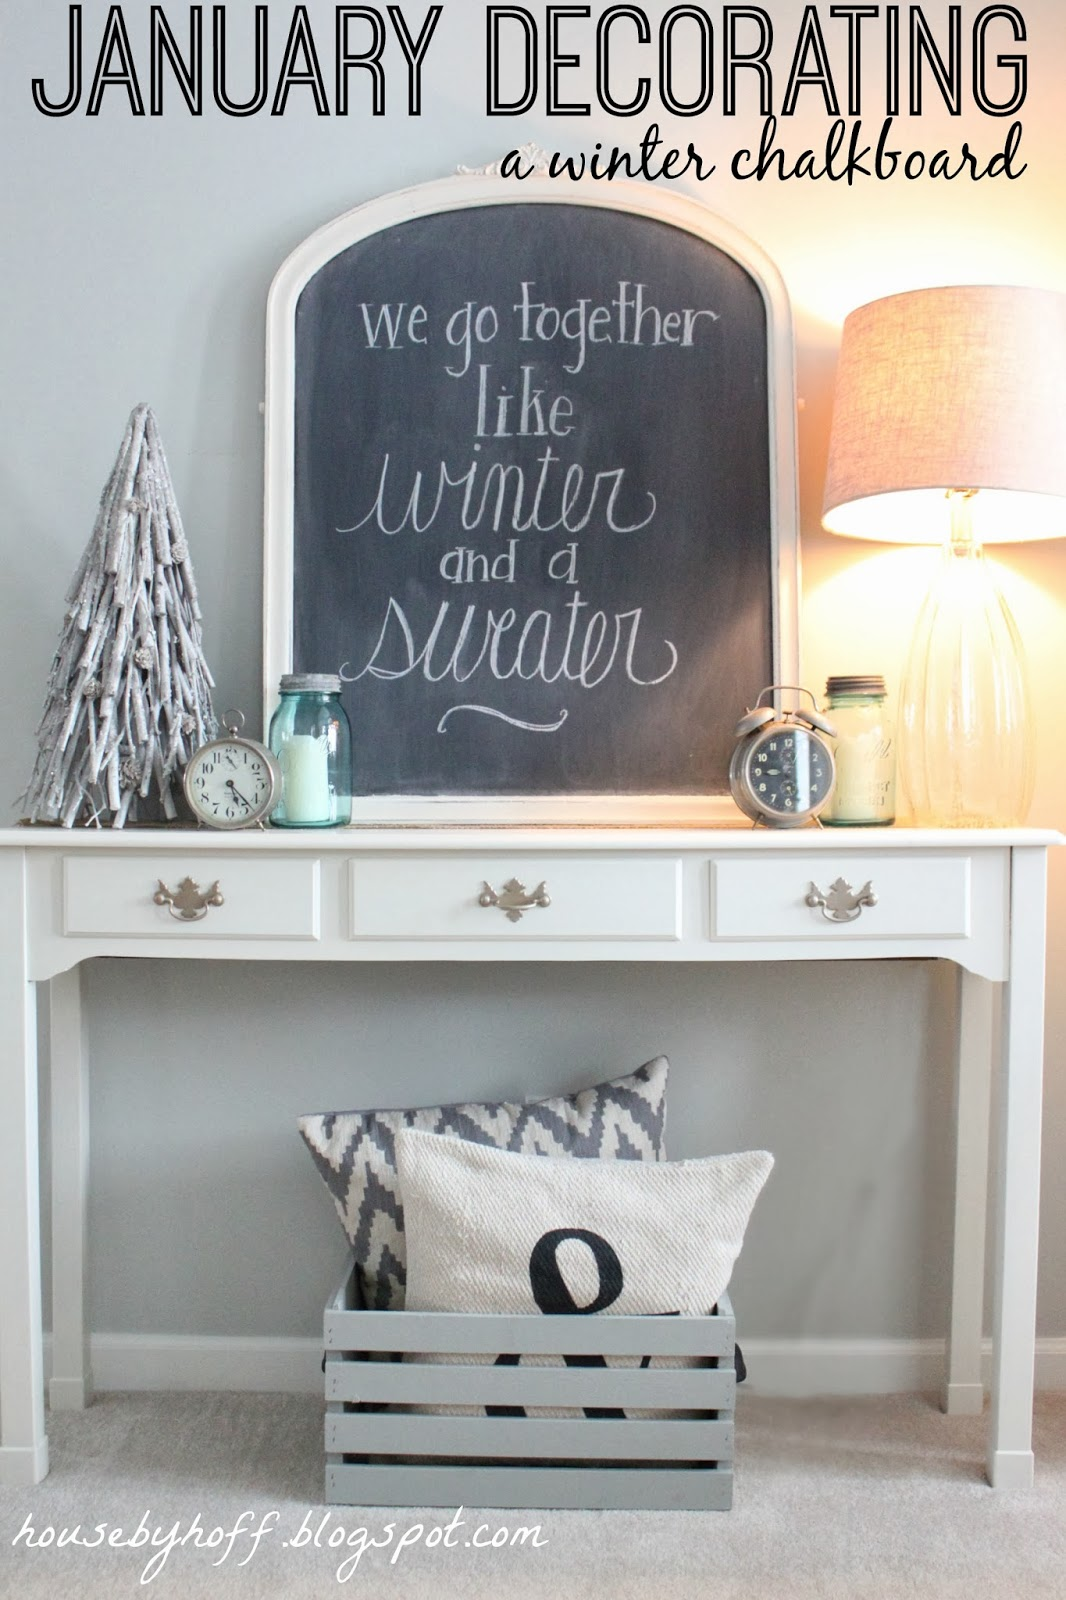 January decorating a winter chalkboard showcasing your